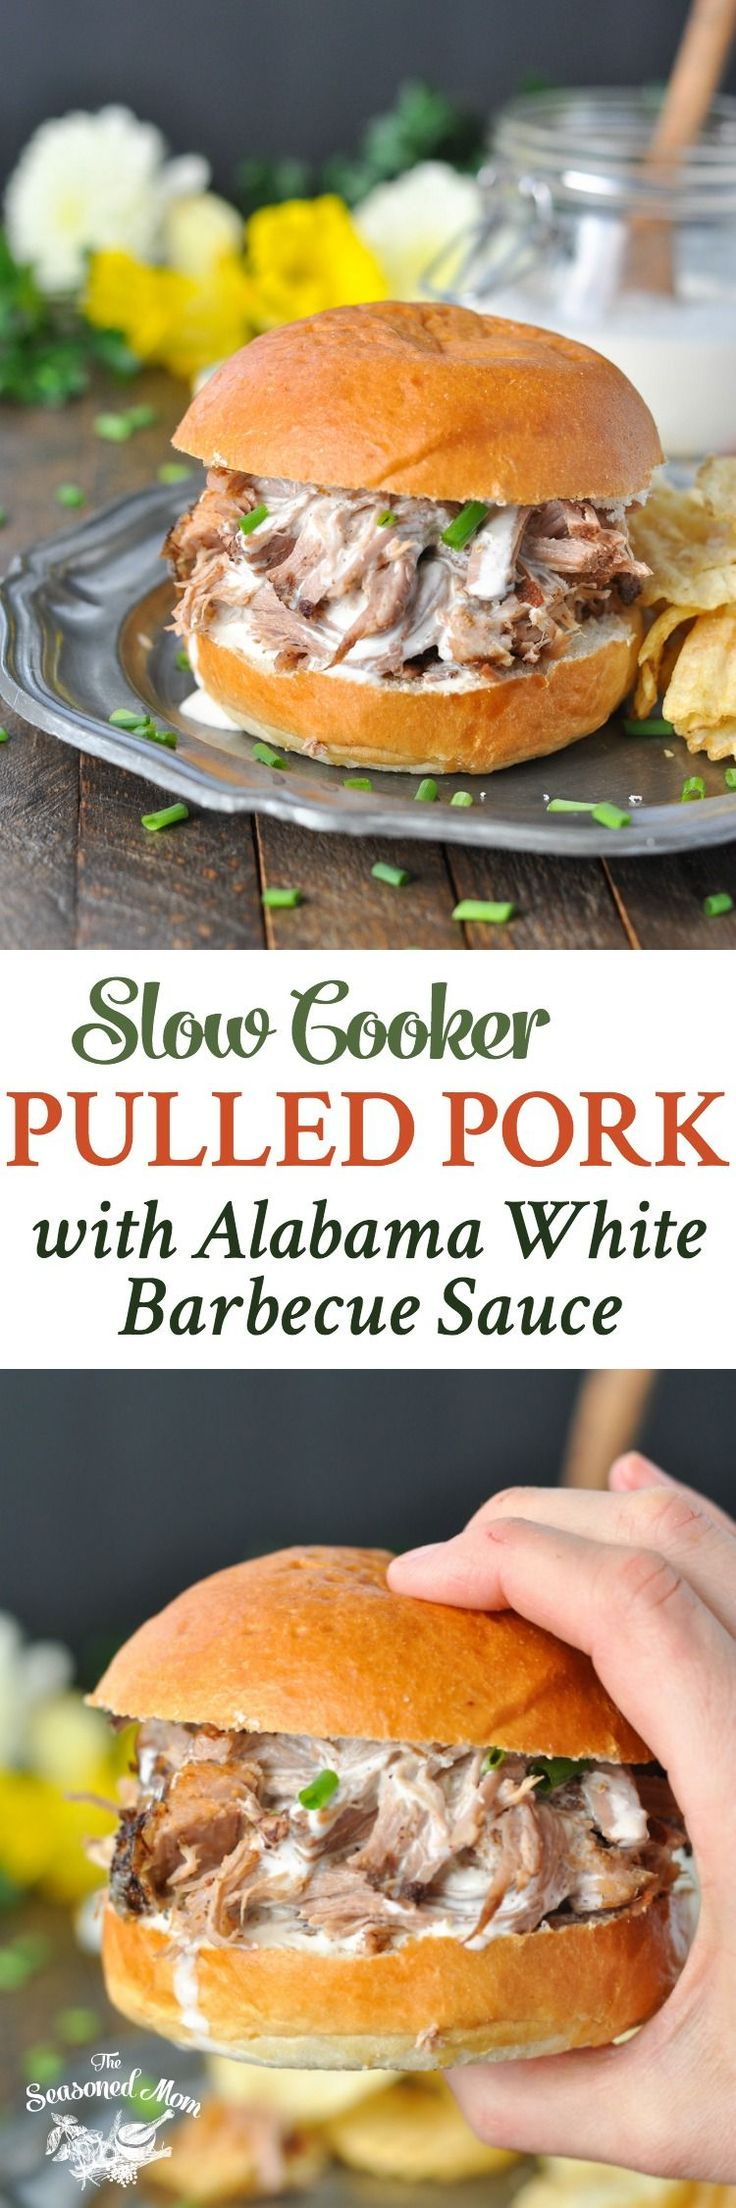 Slow Cooker Pulled Pork with Alabama White Barbecue Sauce